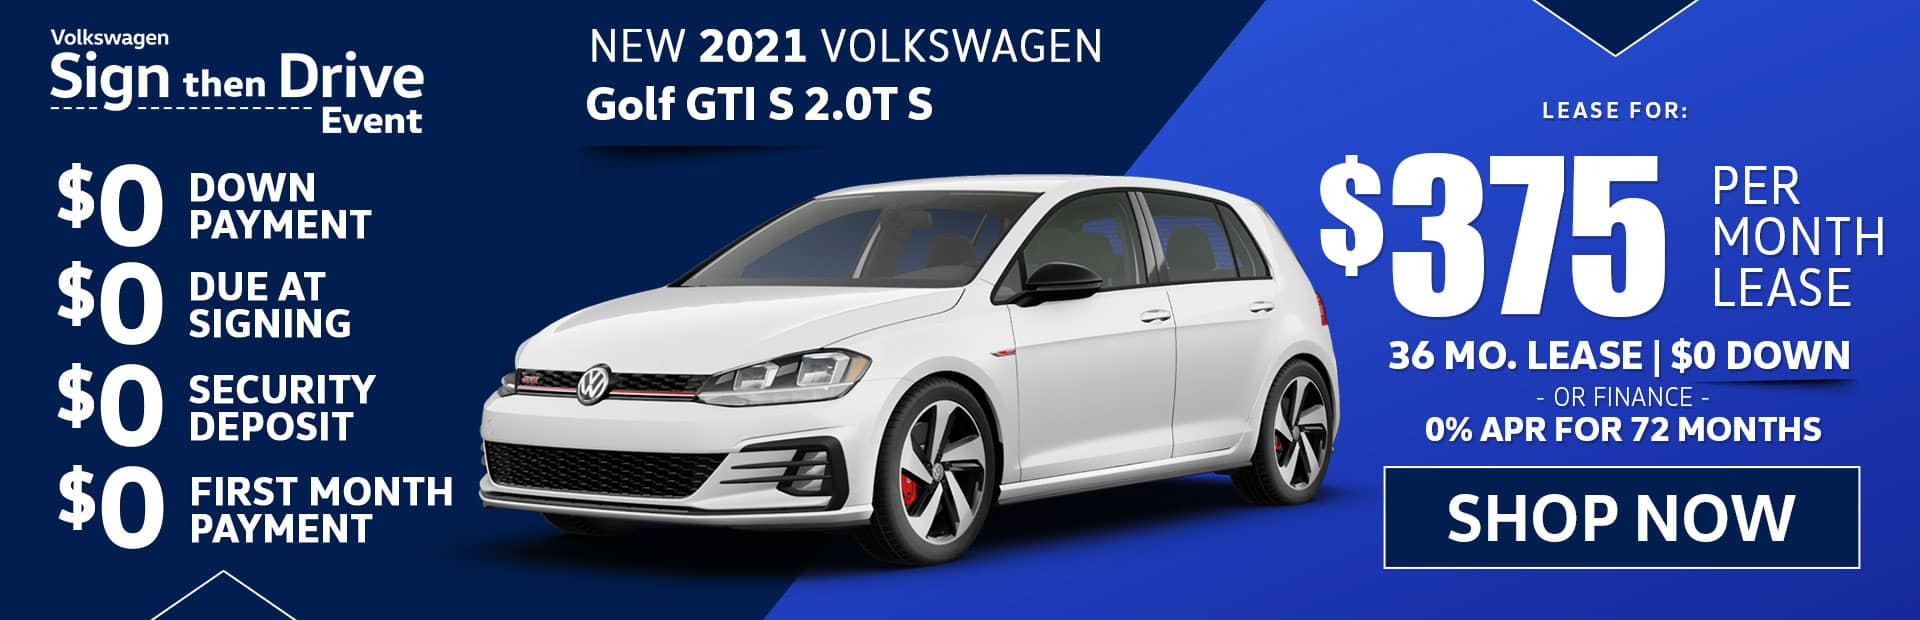 new golf GTI S lease special in los angeles california